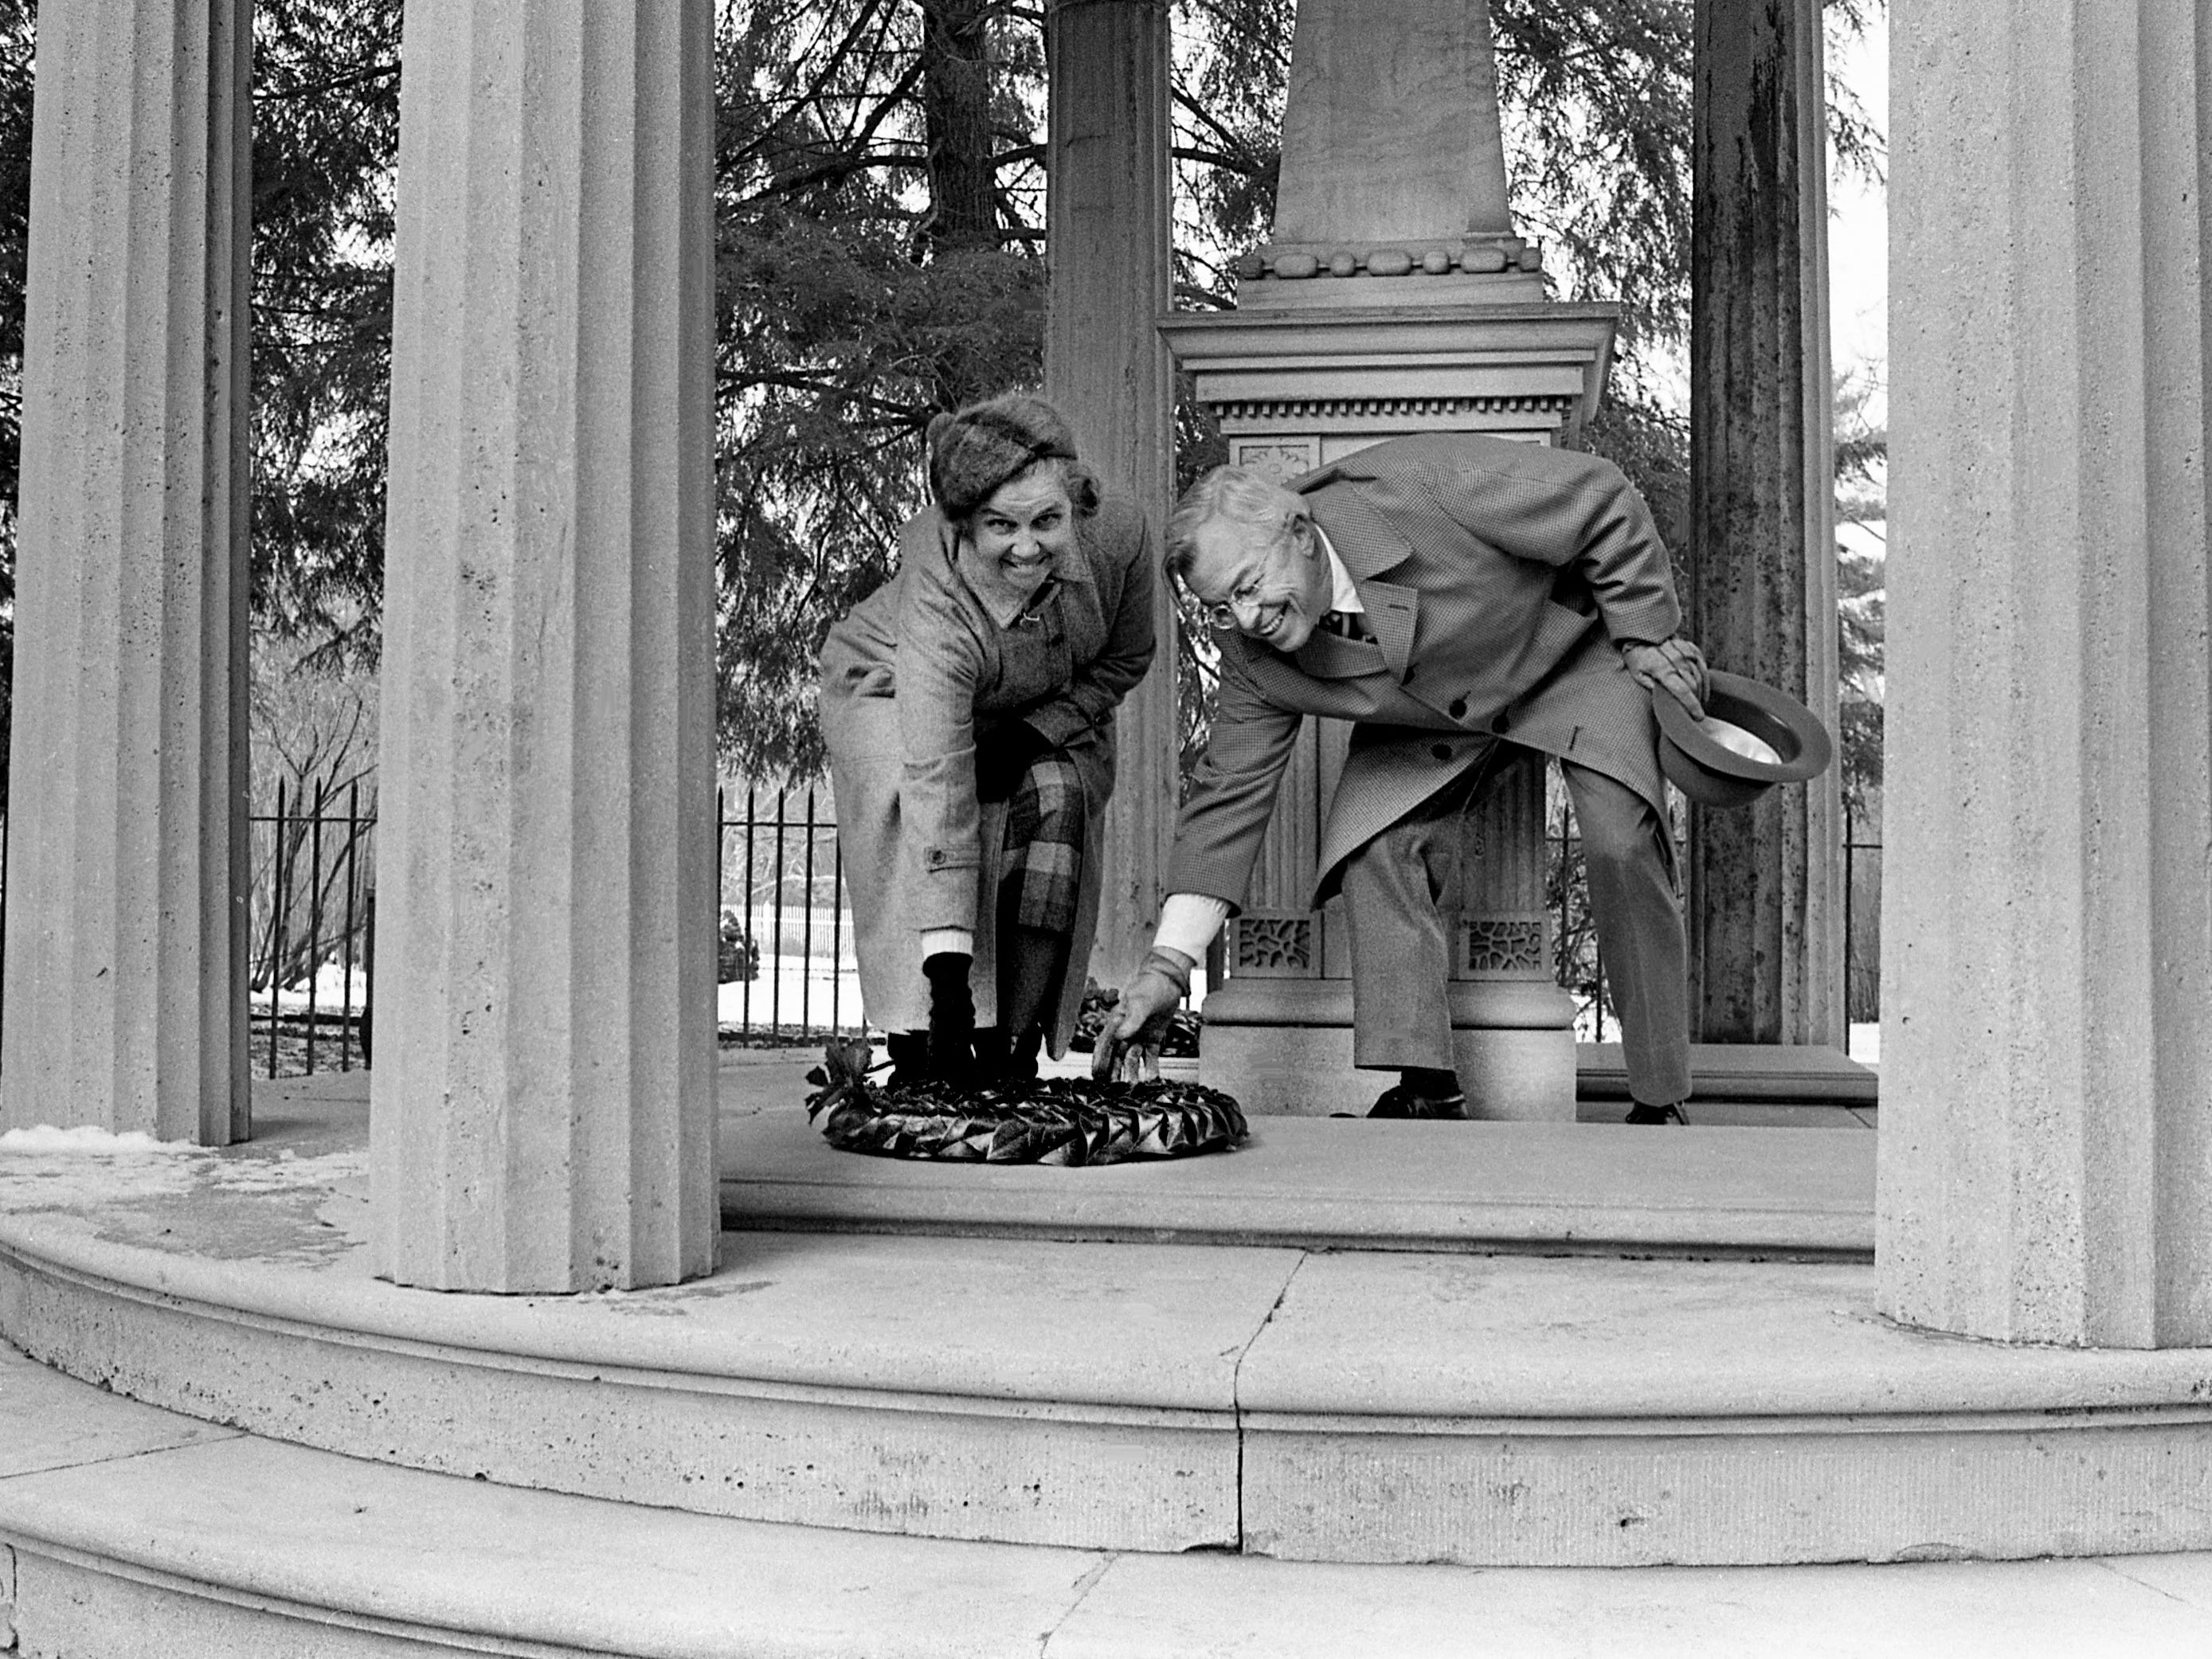 Mrs. Allen Steele, left, regent of the Ladies Hermitage Association, and Lewis Donelson of Memphis are laying a wreath at the tomb of President and Mrs. Andrew Jackson at The Hermitage during a ceremony in commemoration of the Battle of New Orleans on Jan. 8, 1979. Donelson was recently named commissioner of finance and administration by Governor-elect Lamar Alexander.